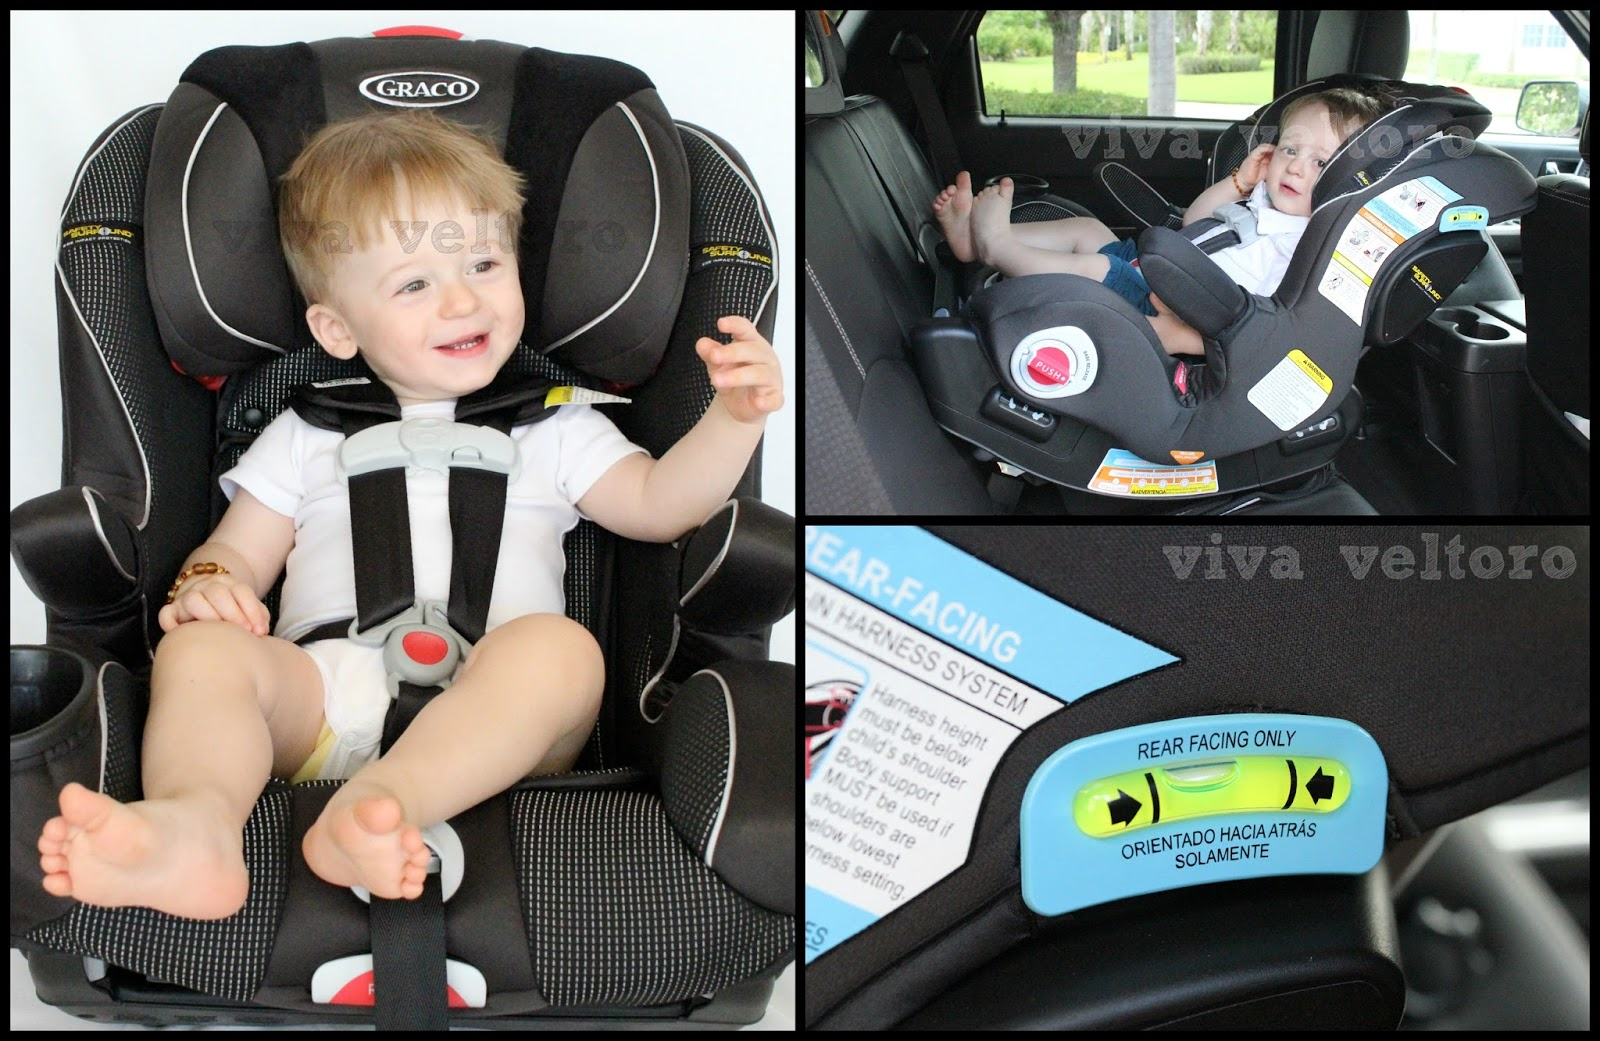 Graco Forever Car Seat Rear Facing Weight Limit - Blog Dandk